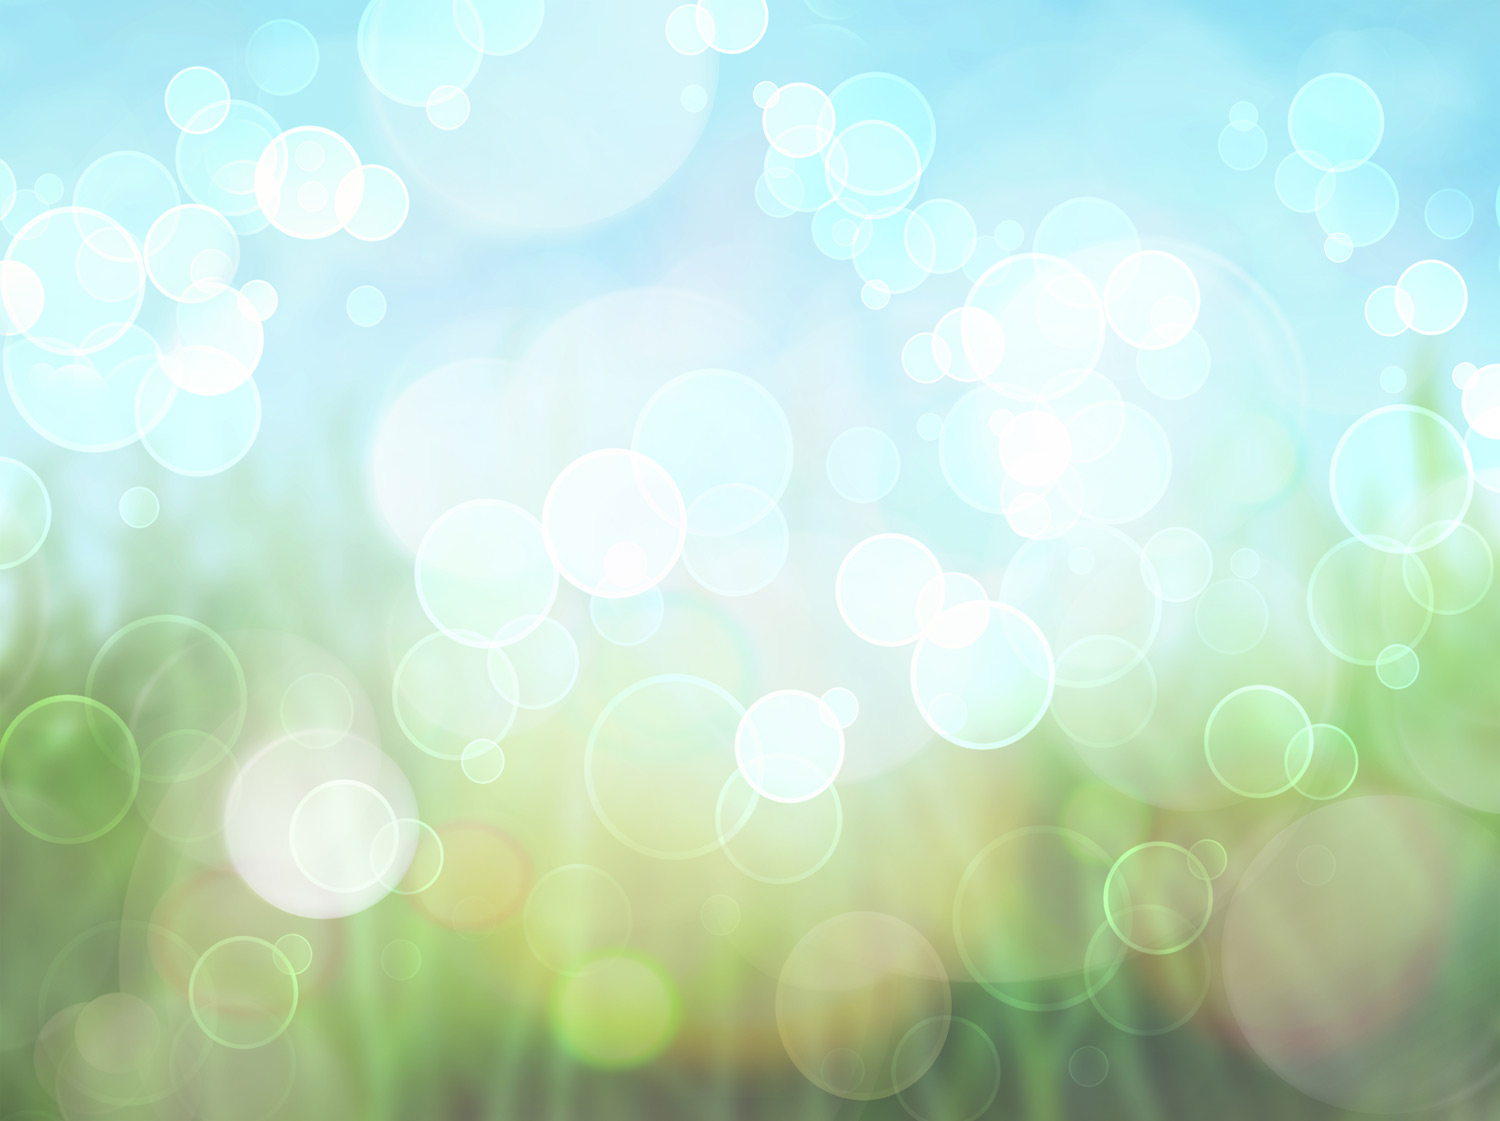 Tag: Spring Drops Wallpapers, Backgrounds,Photos, Images and Pictures ...